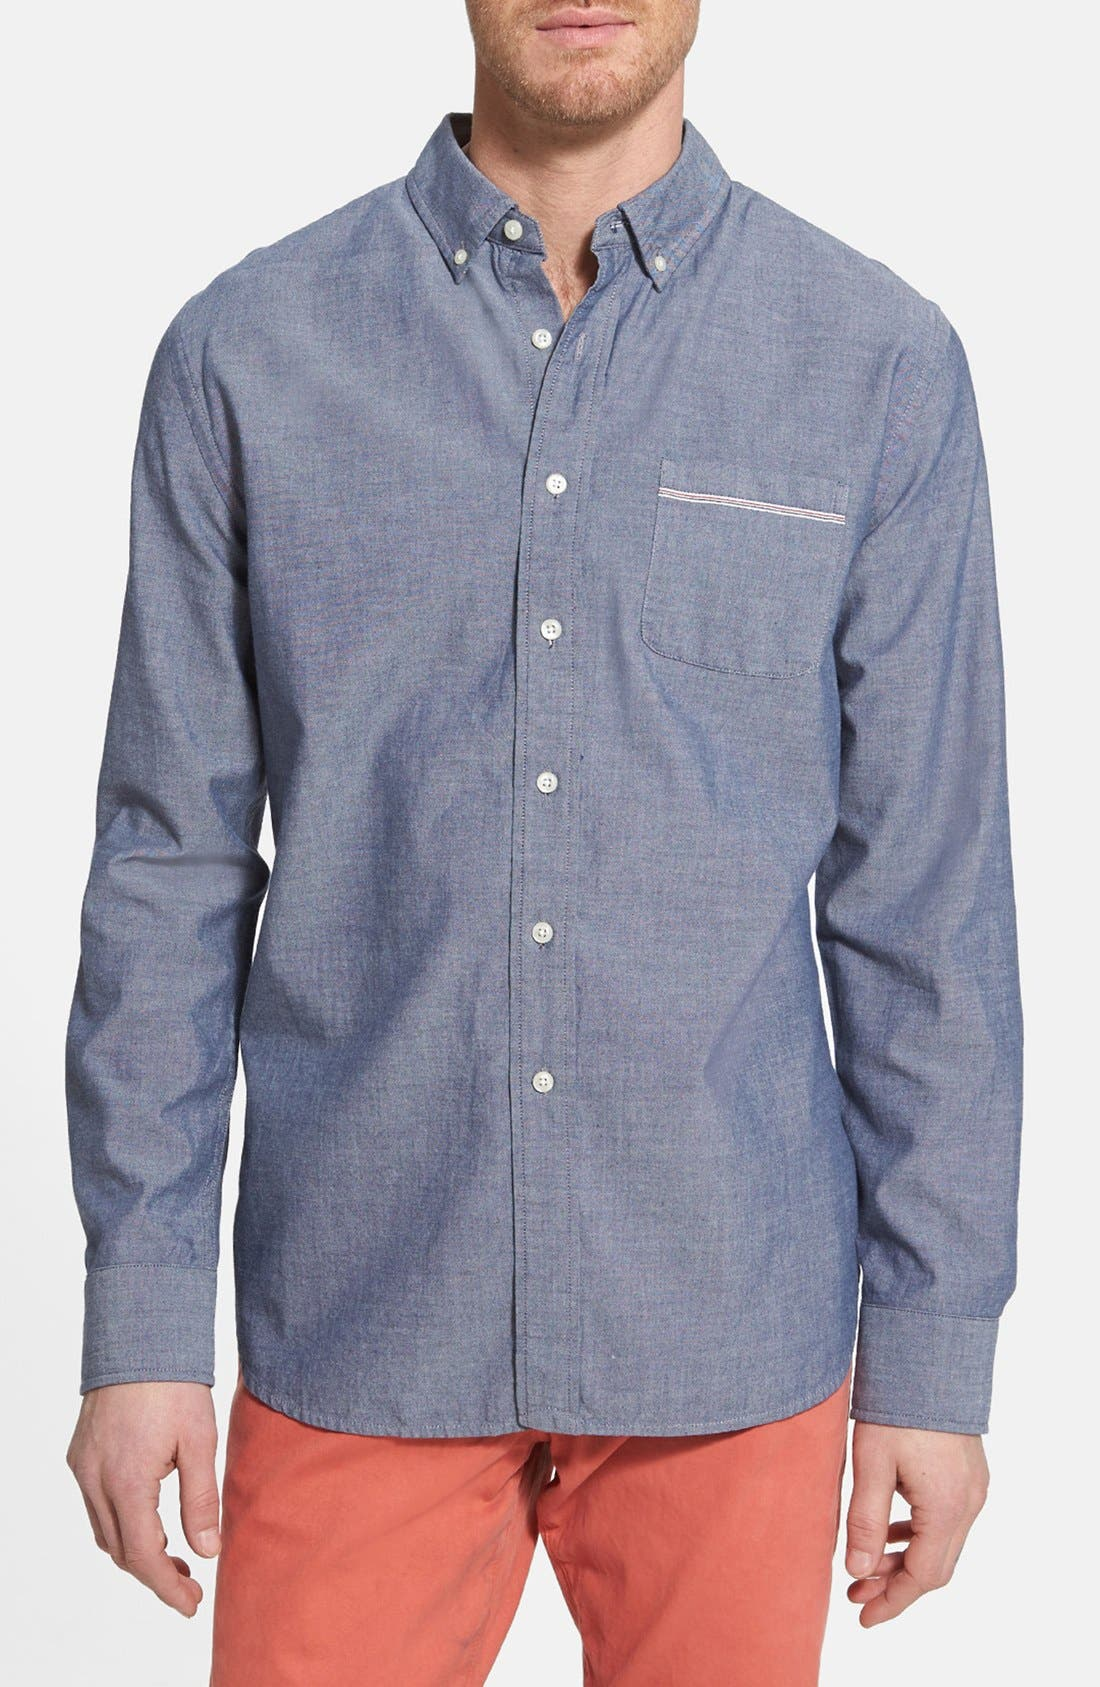 Alternate Image 1 Selected - Grayers Trim Fit Selvedge Chambray Sport Shirt